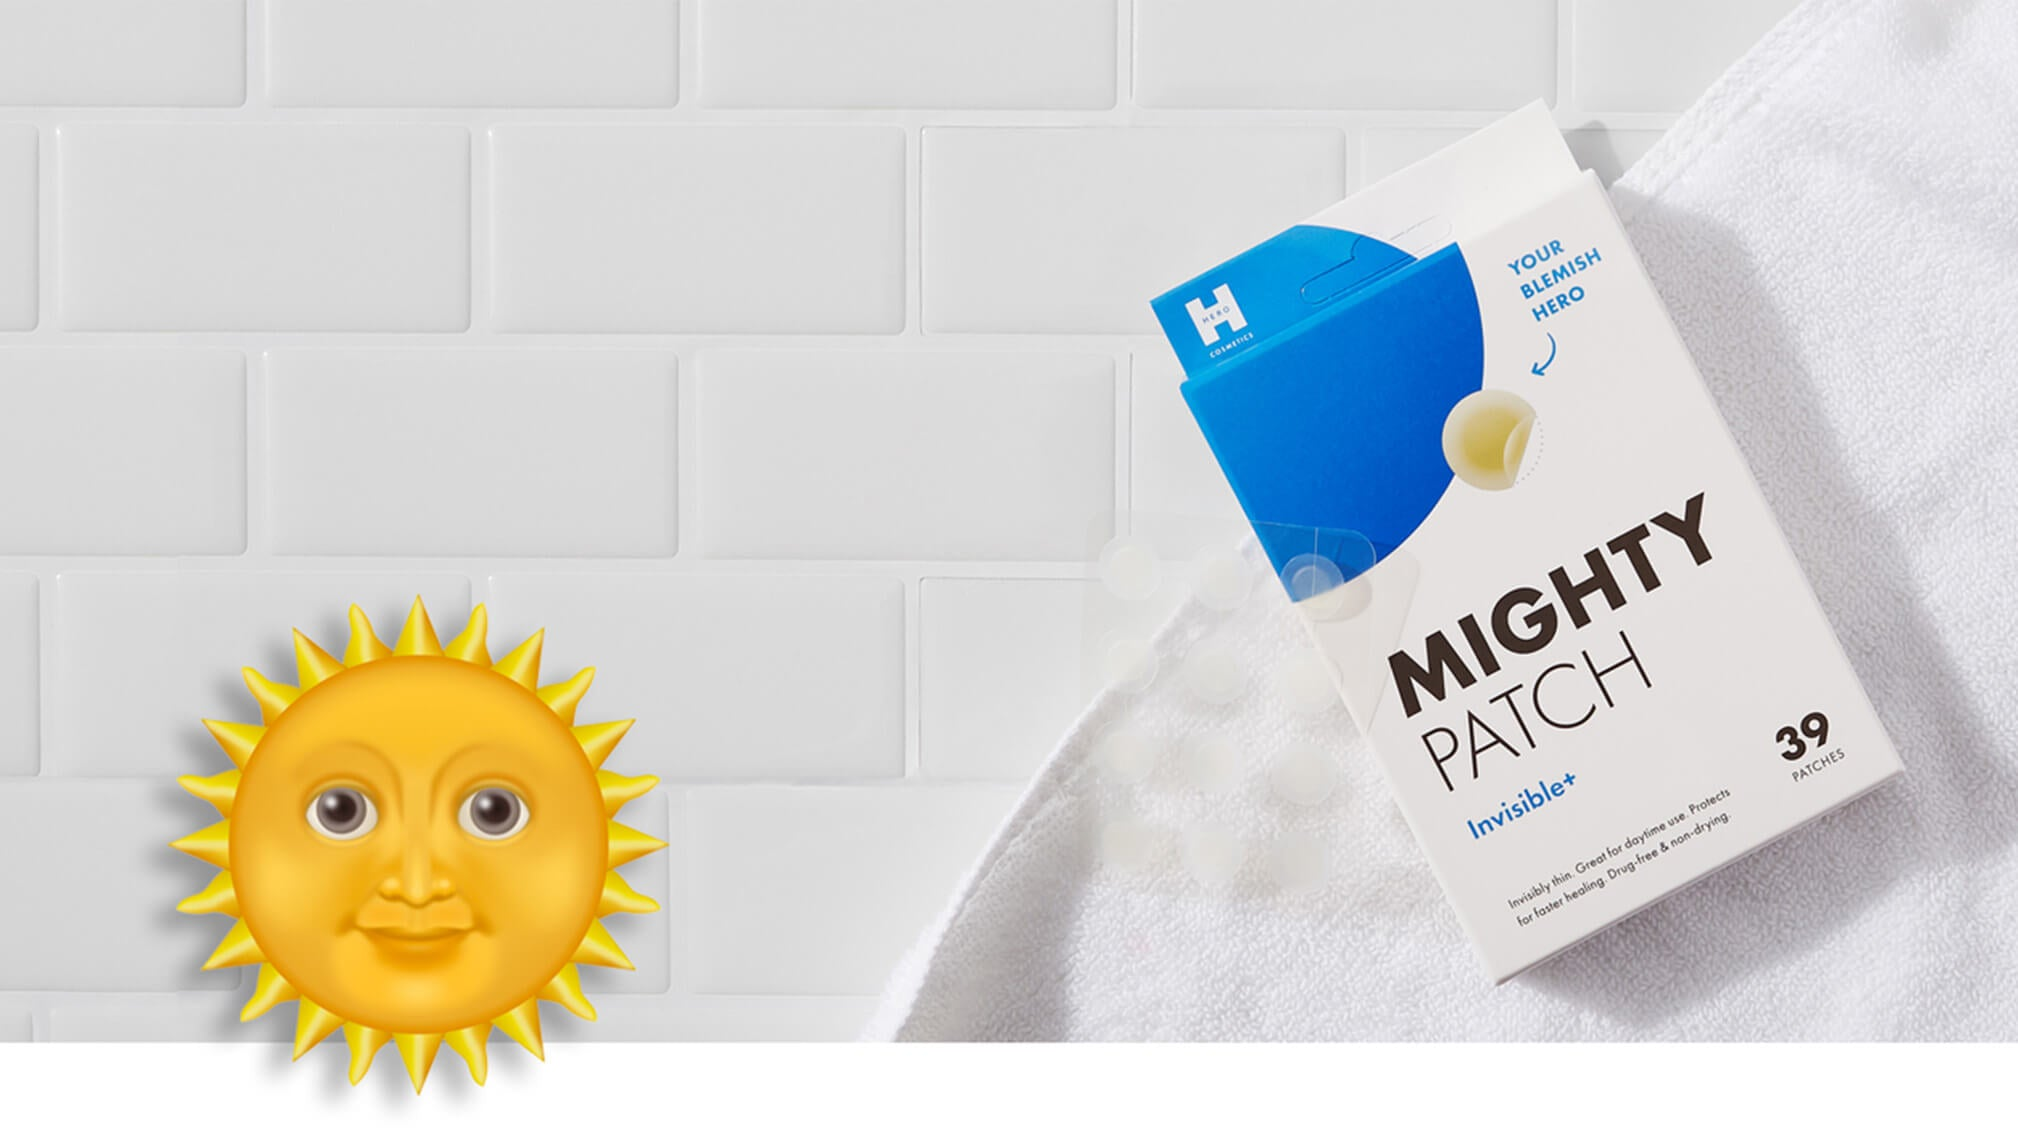 Mighty Patch Invisible+ box on top of white towel